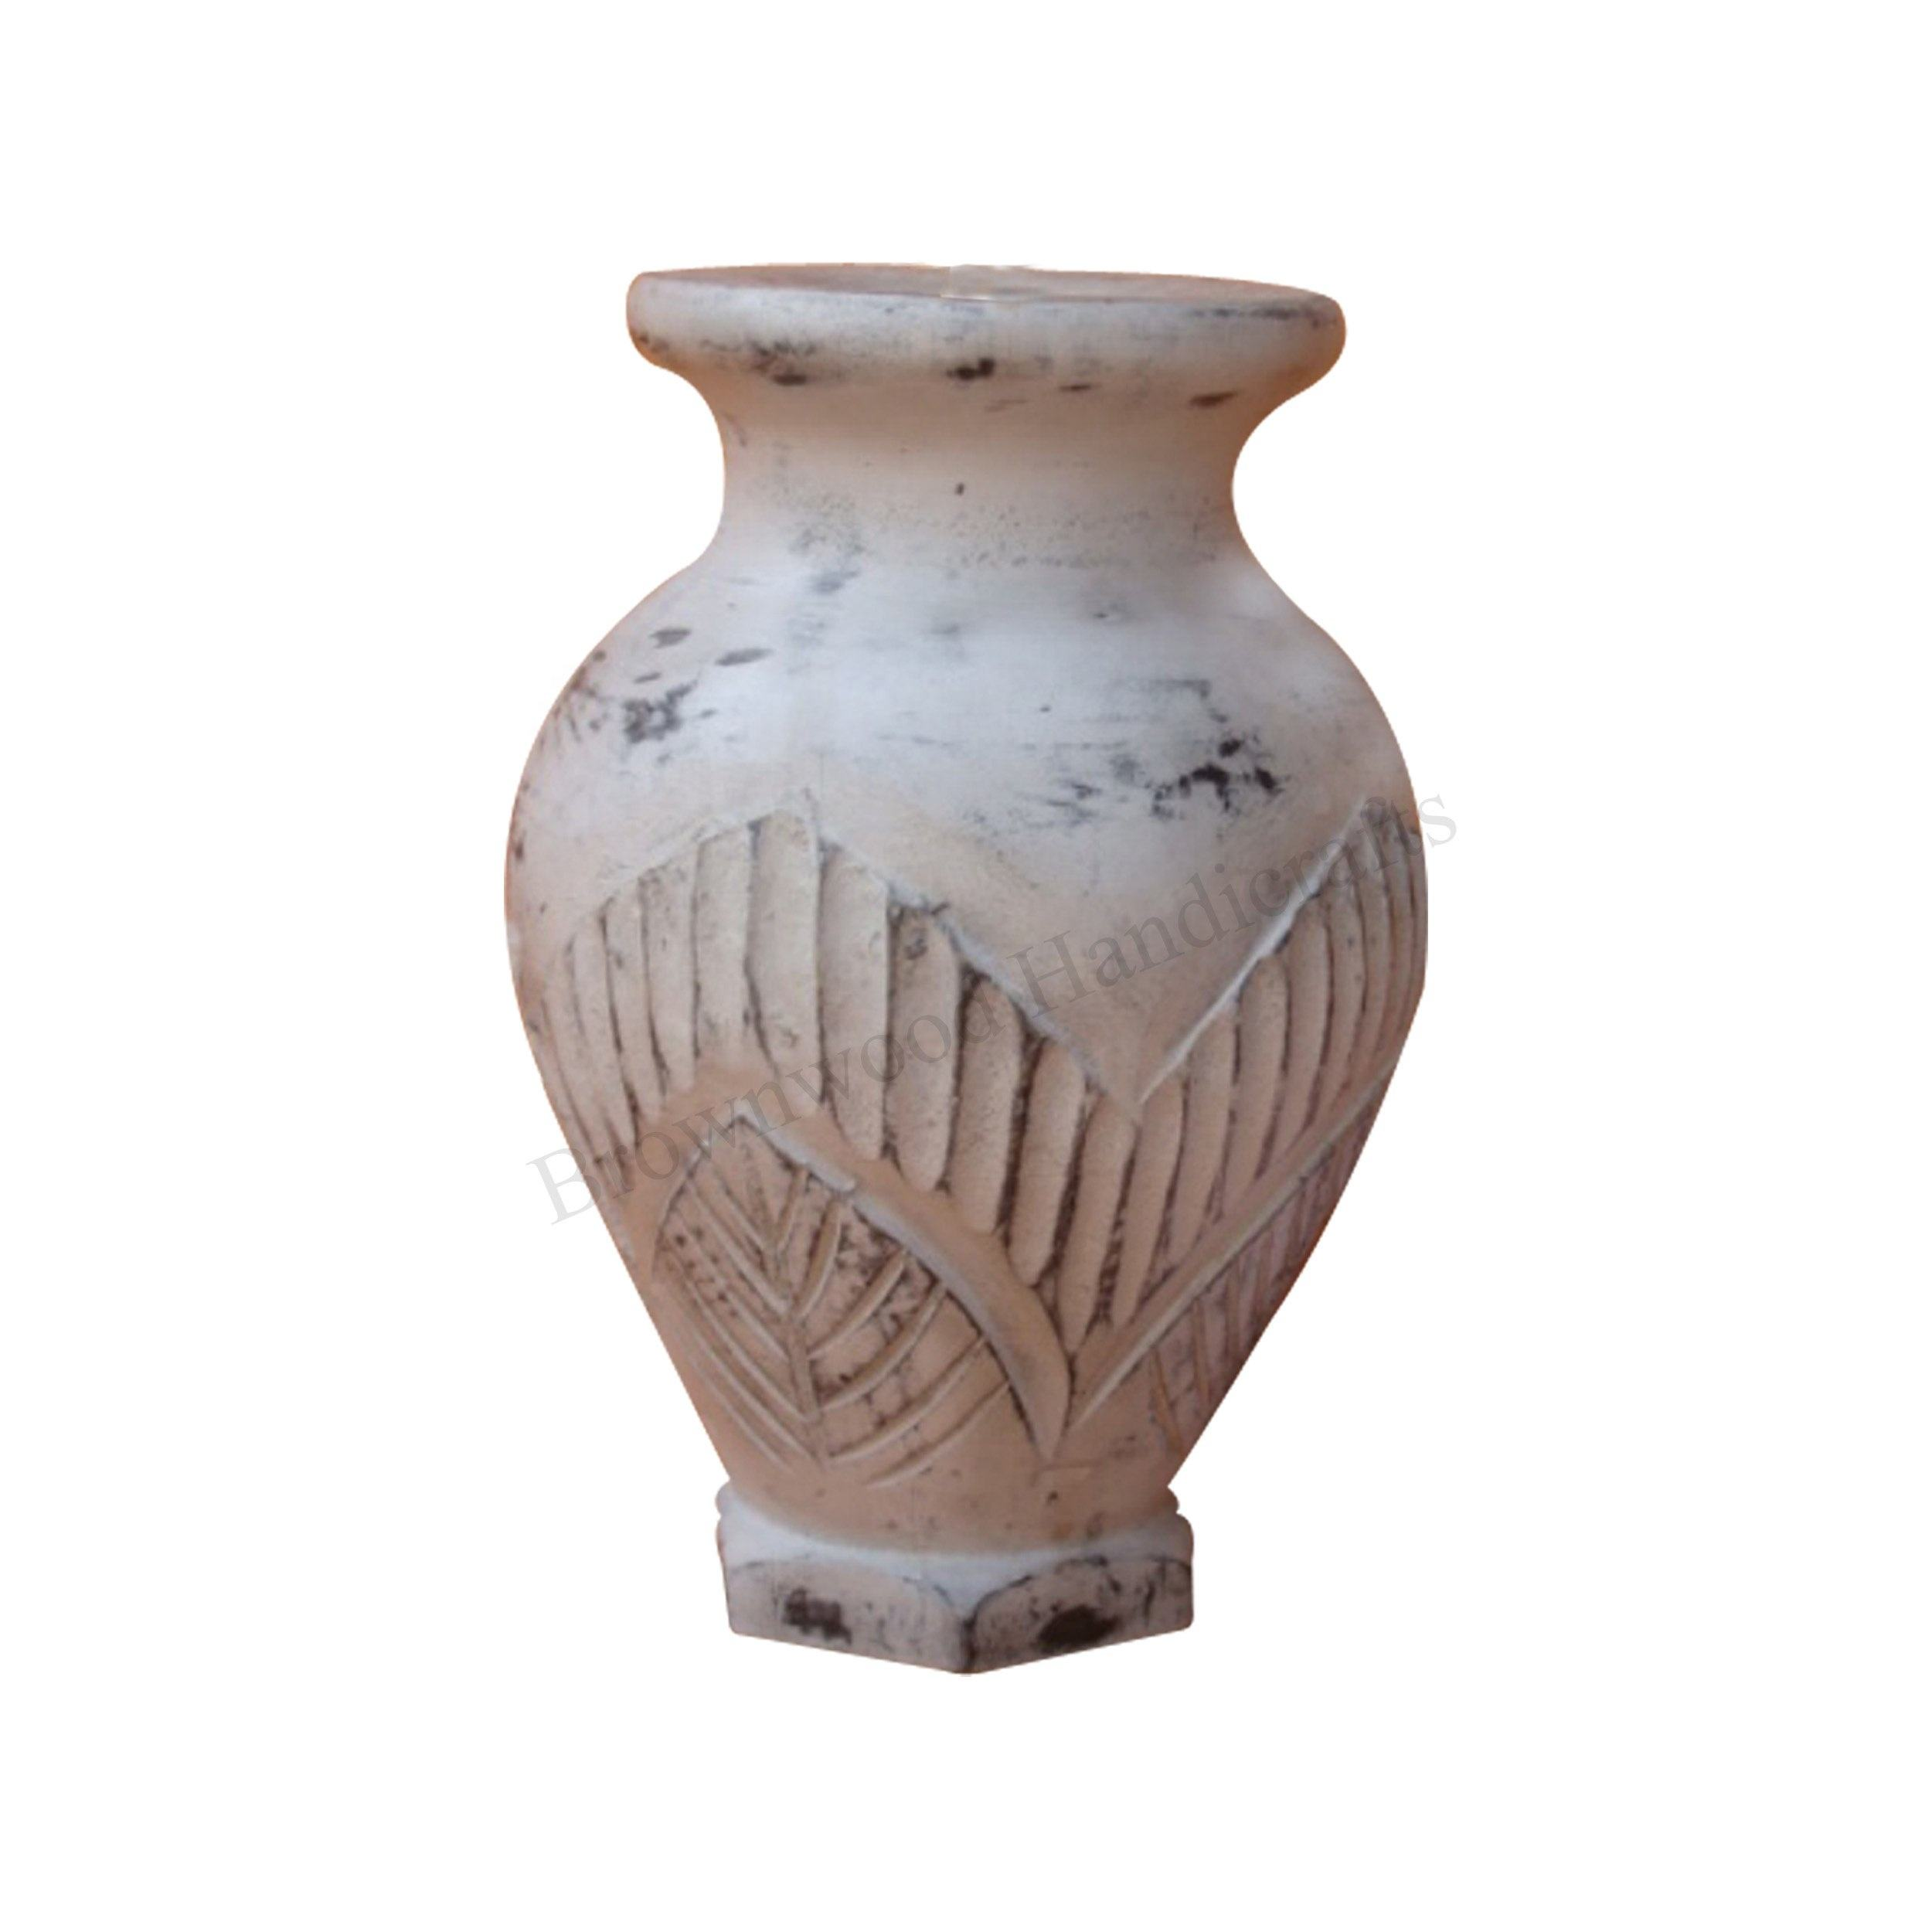 Wooden Handmade Carving Vase Latest Designs of Mango Wood Vase